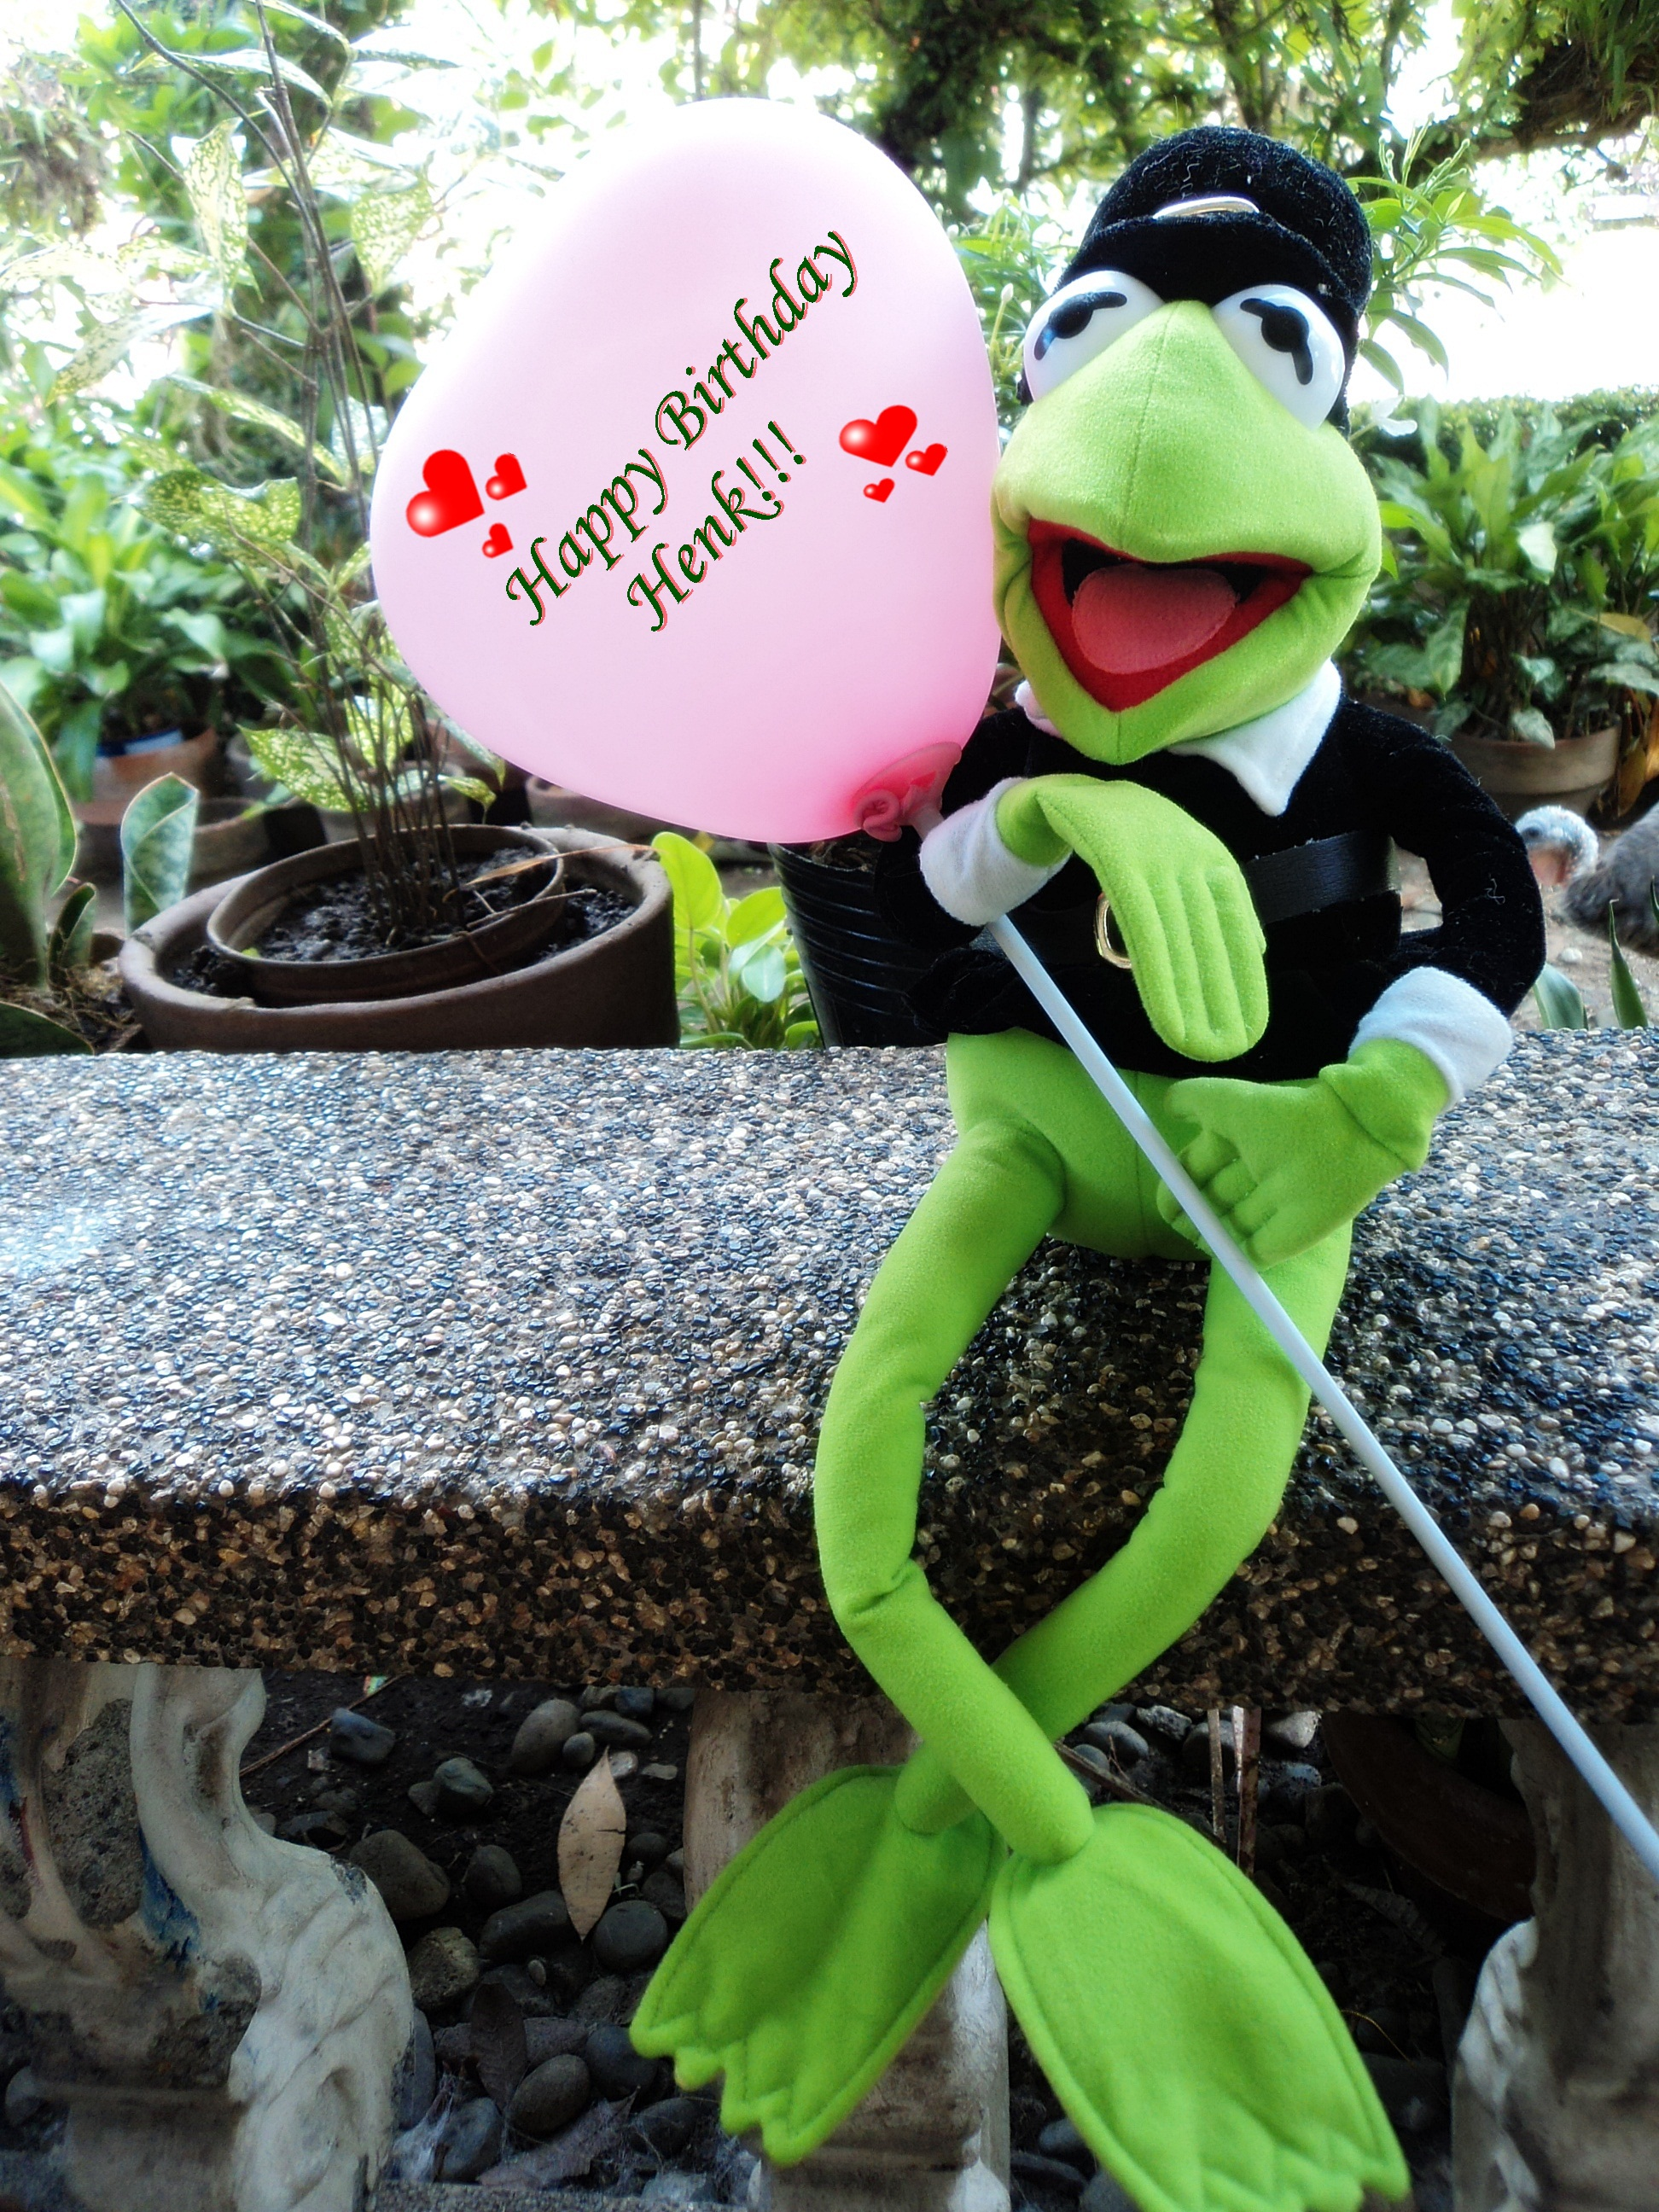 Kermit the frog images birthday greetings to henk hd wallpaper and kermit the frog images birthday greetings to henk hd wallpaper and background photos m4hsunfo